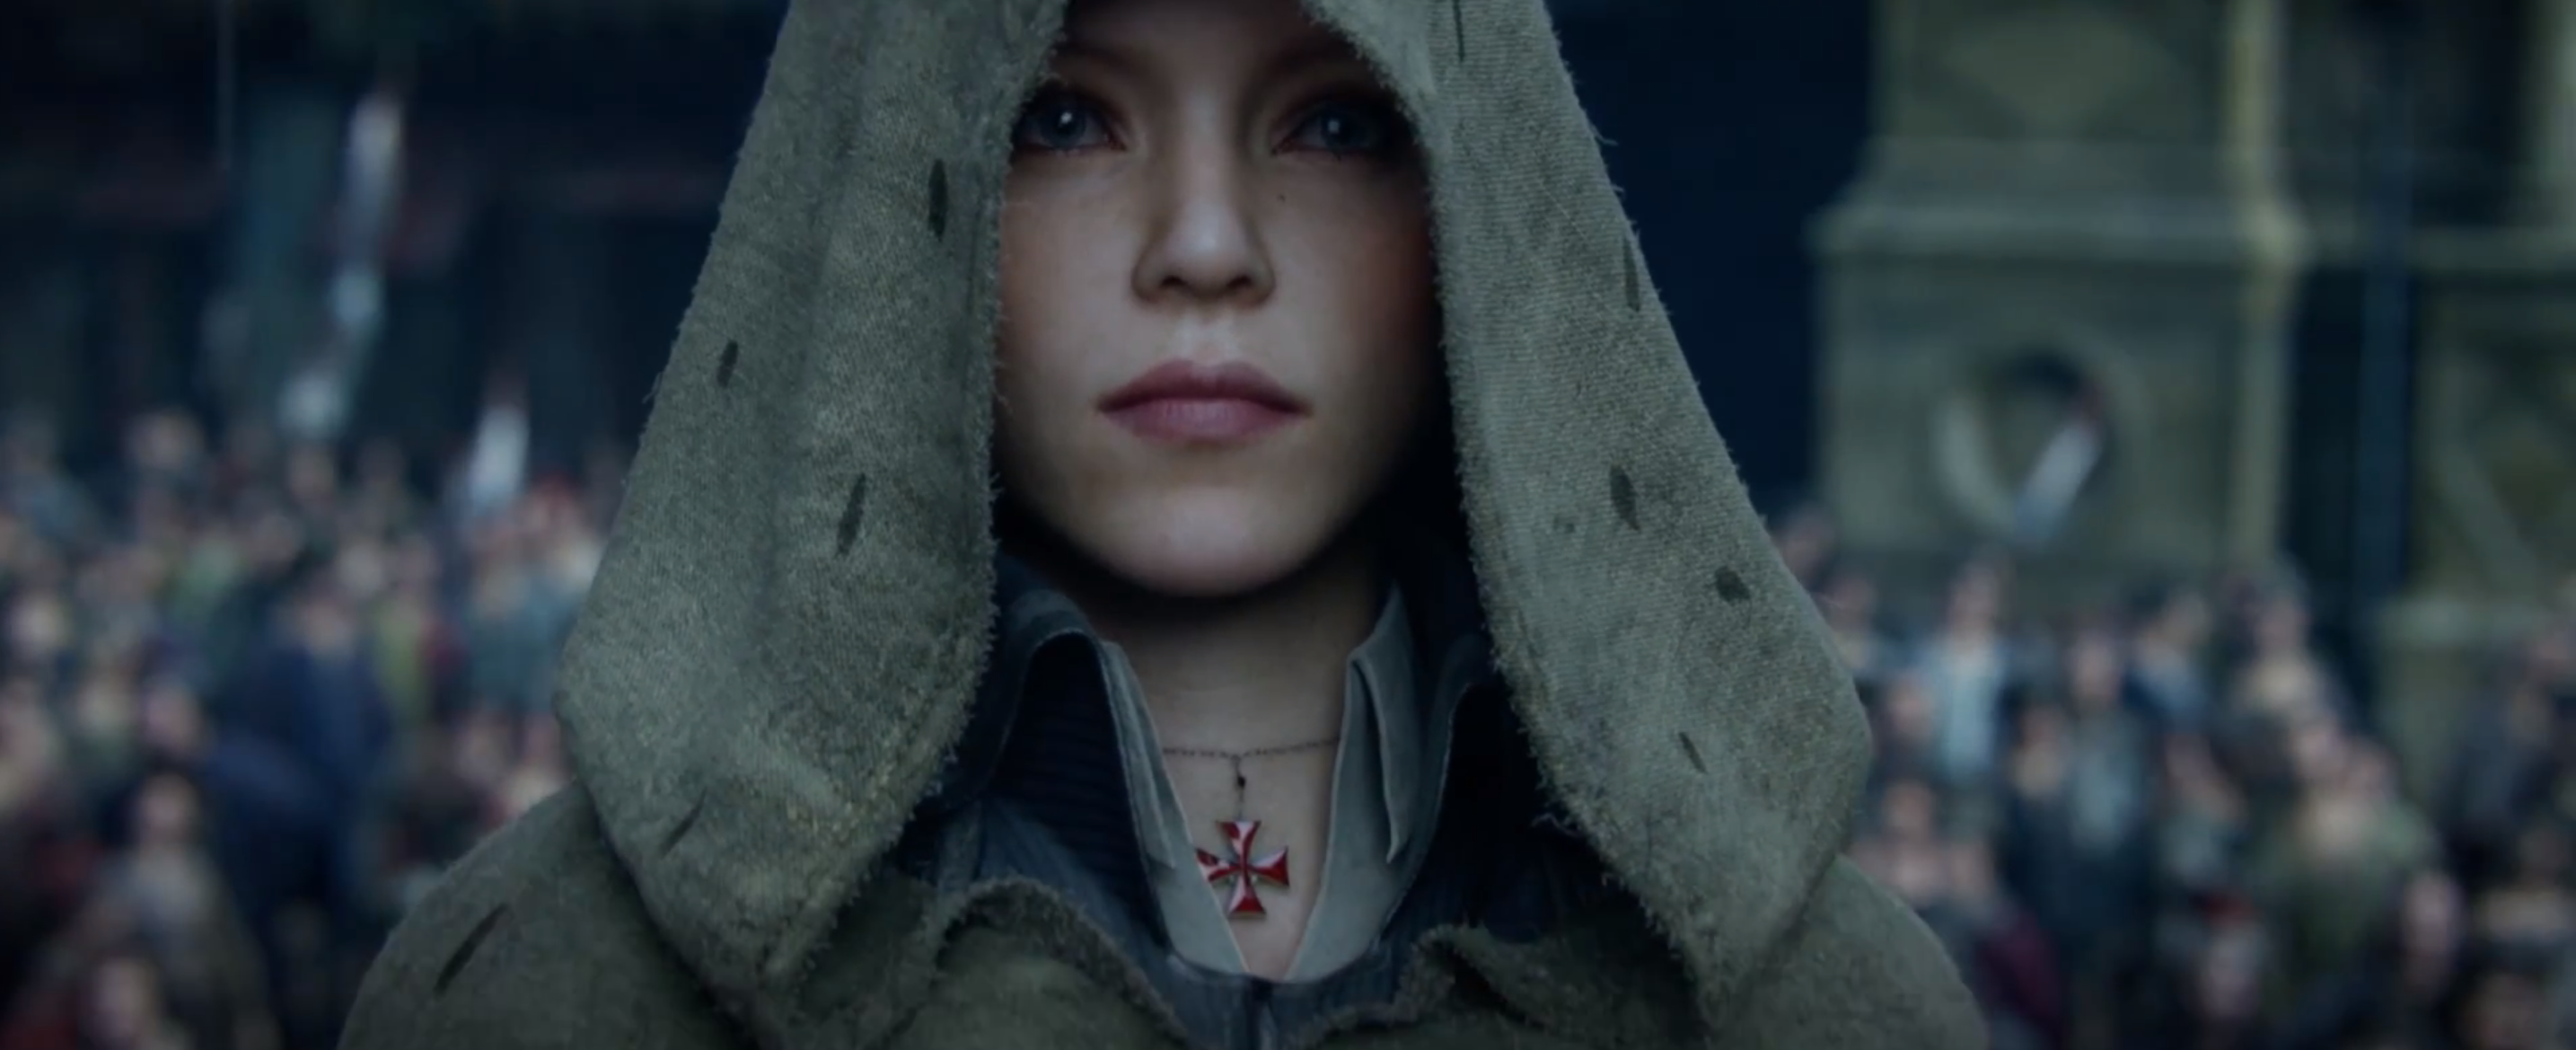 The Assassin S Creed Movie Just Cast An Oscar Winner Overmental